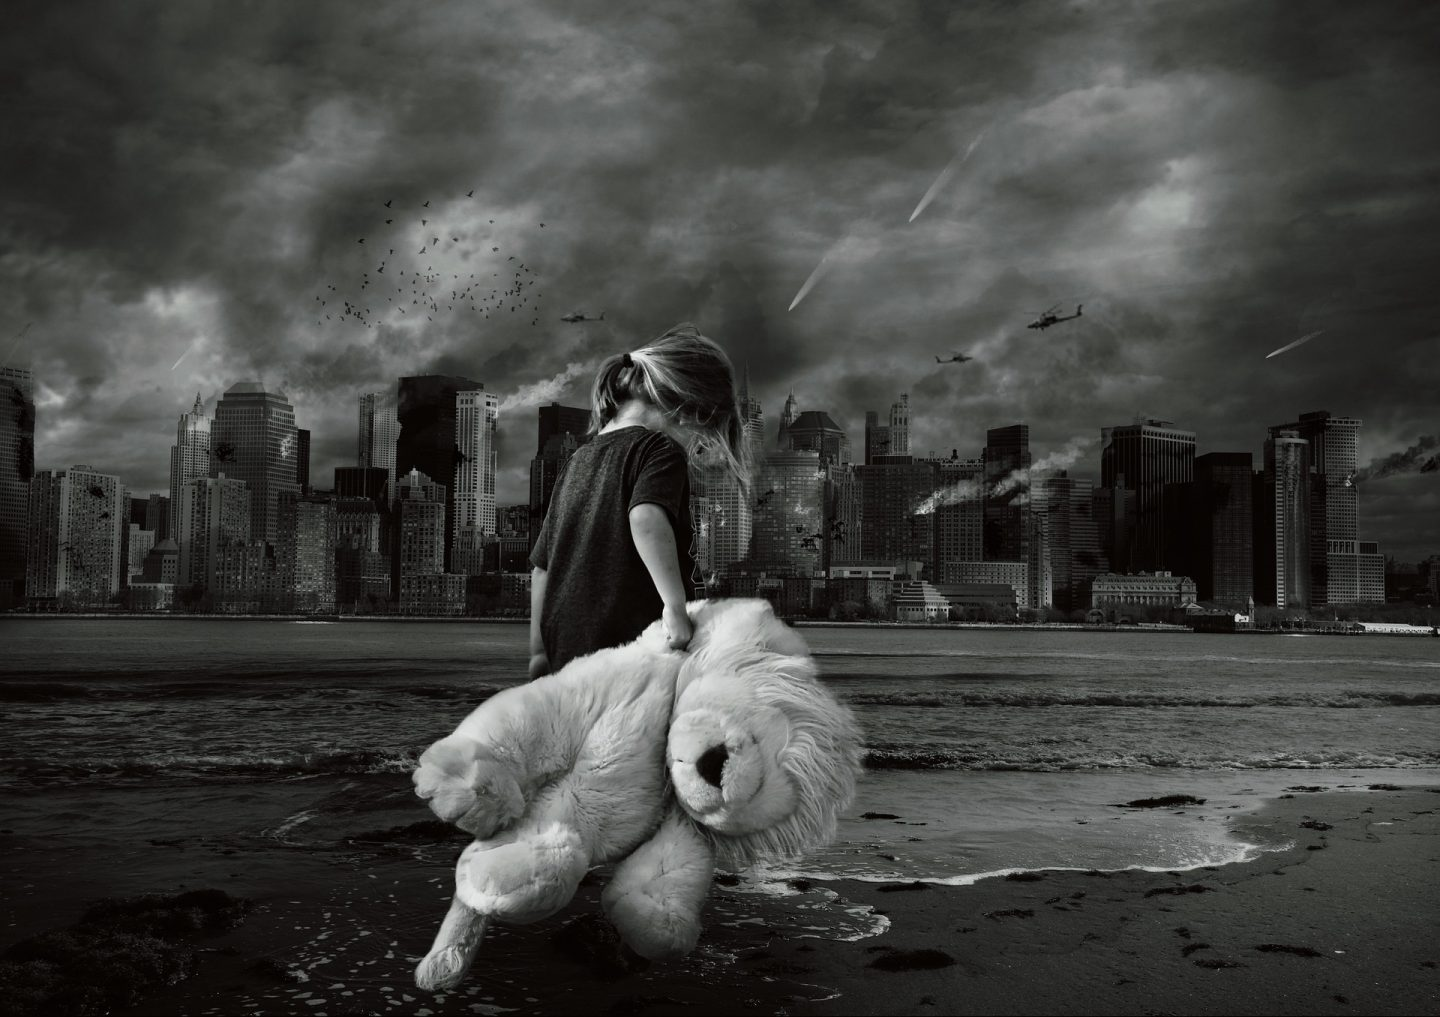 Child carrying a lion soft toy walks across a disaster zone with a city background